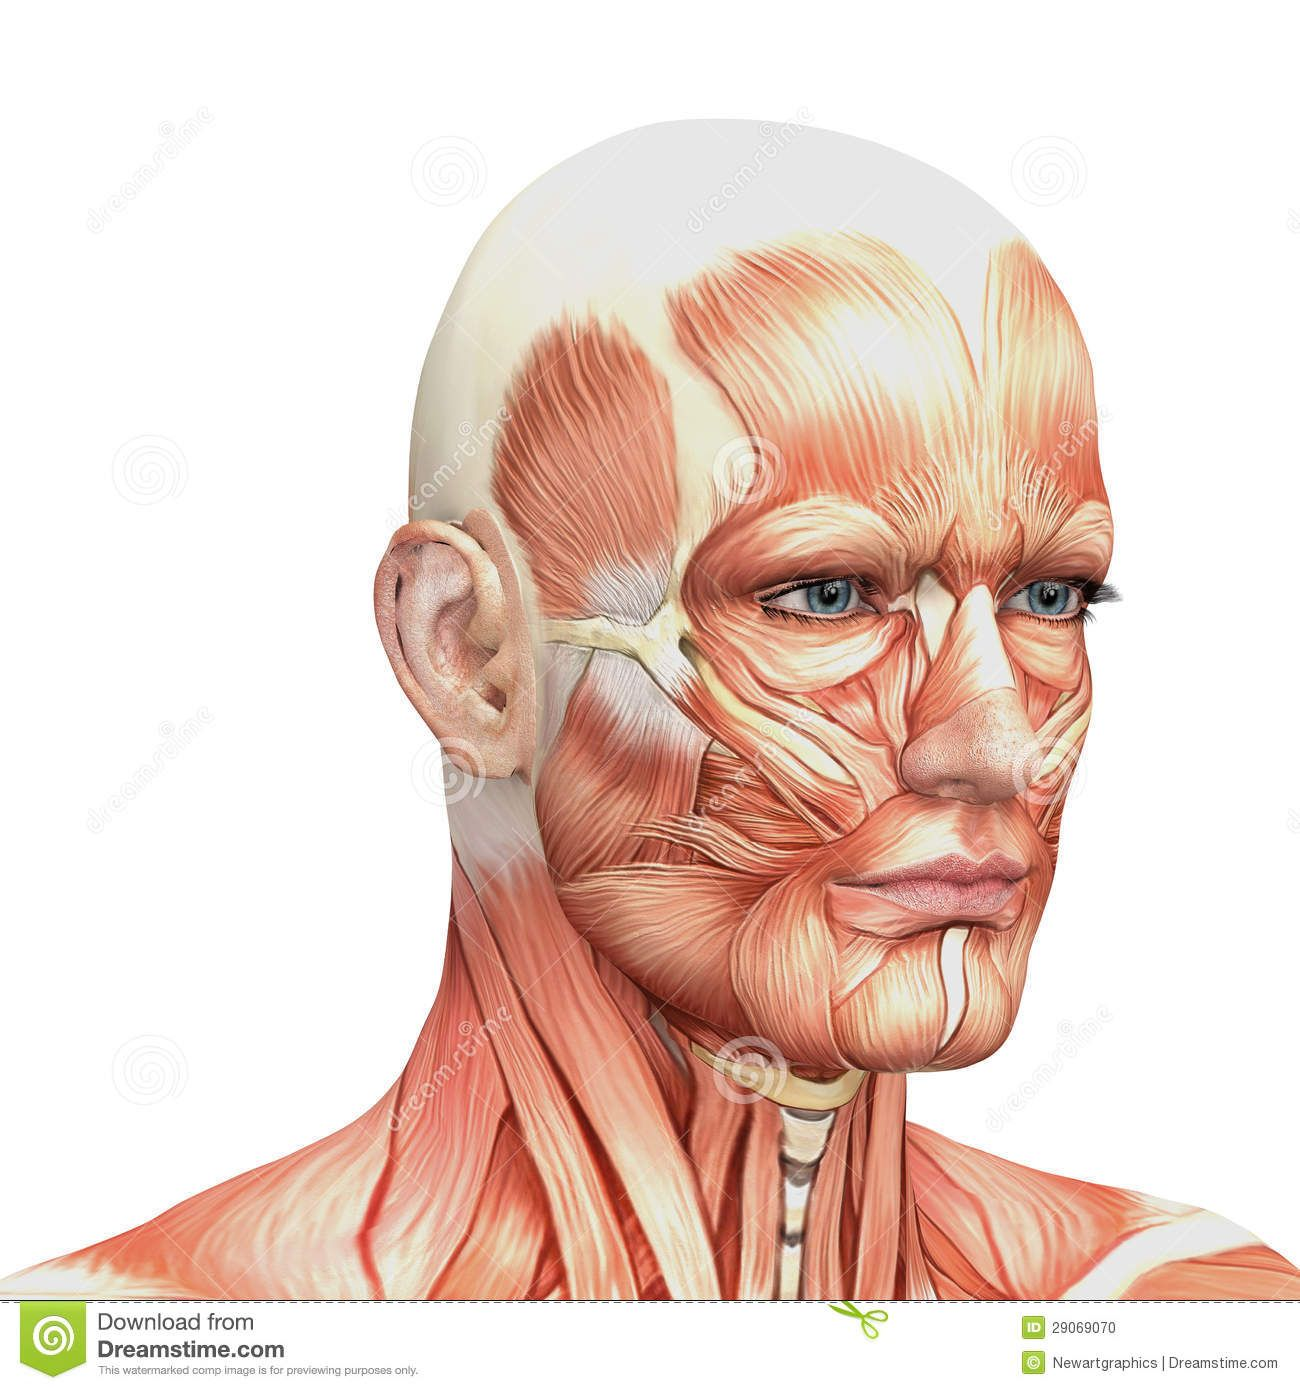 Image result for human face muscles | Montreal projects | Pinterest ...